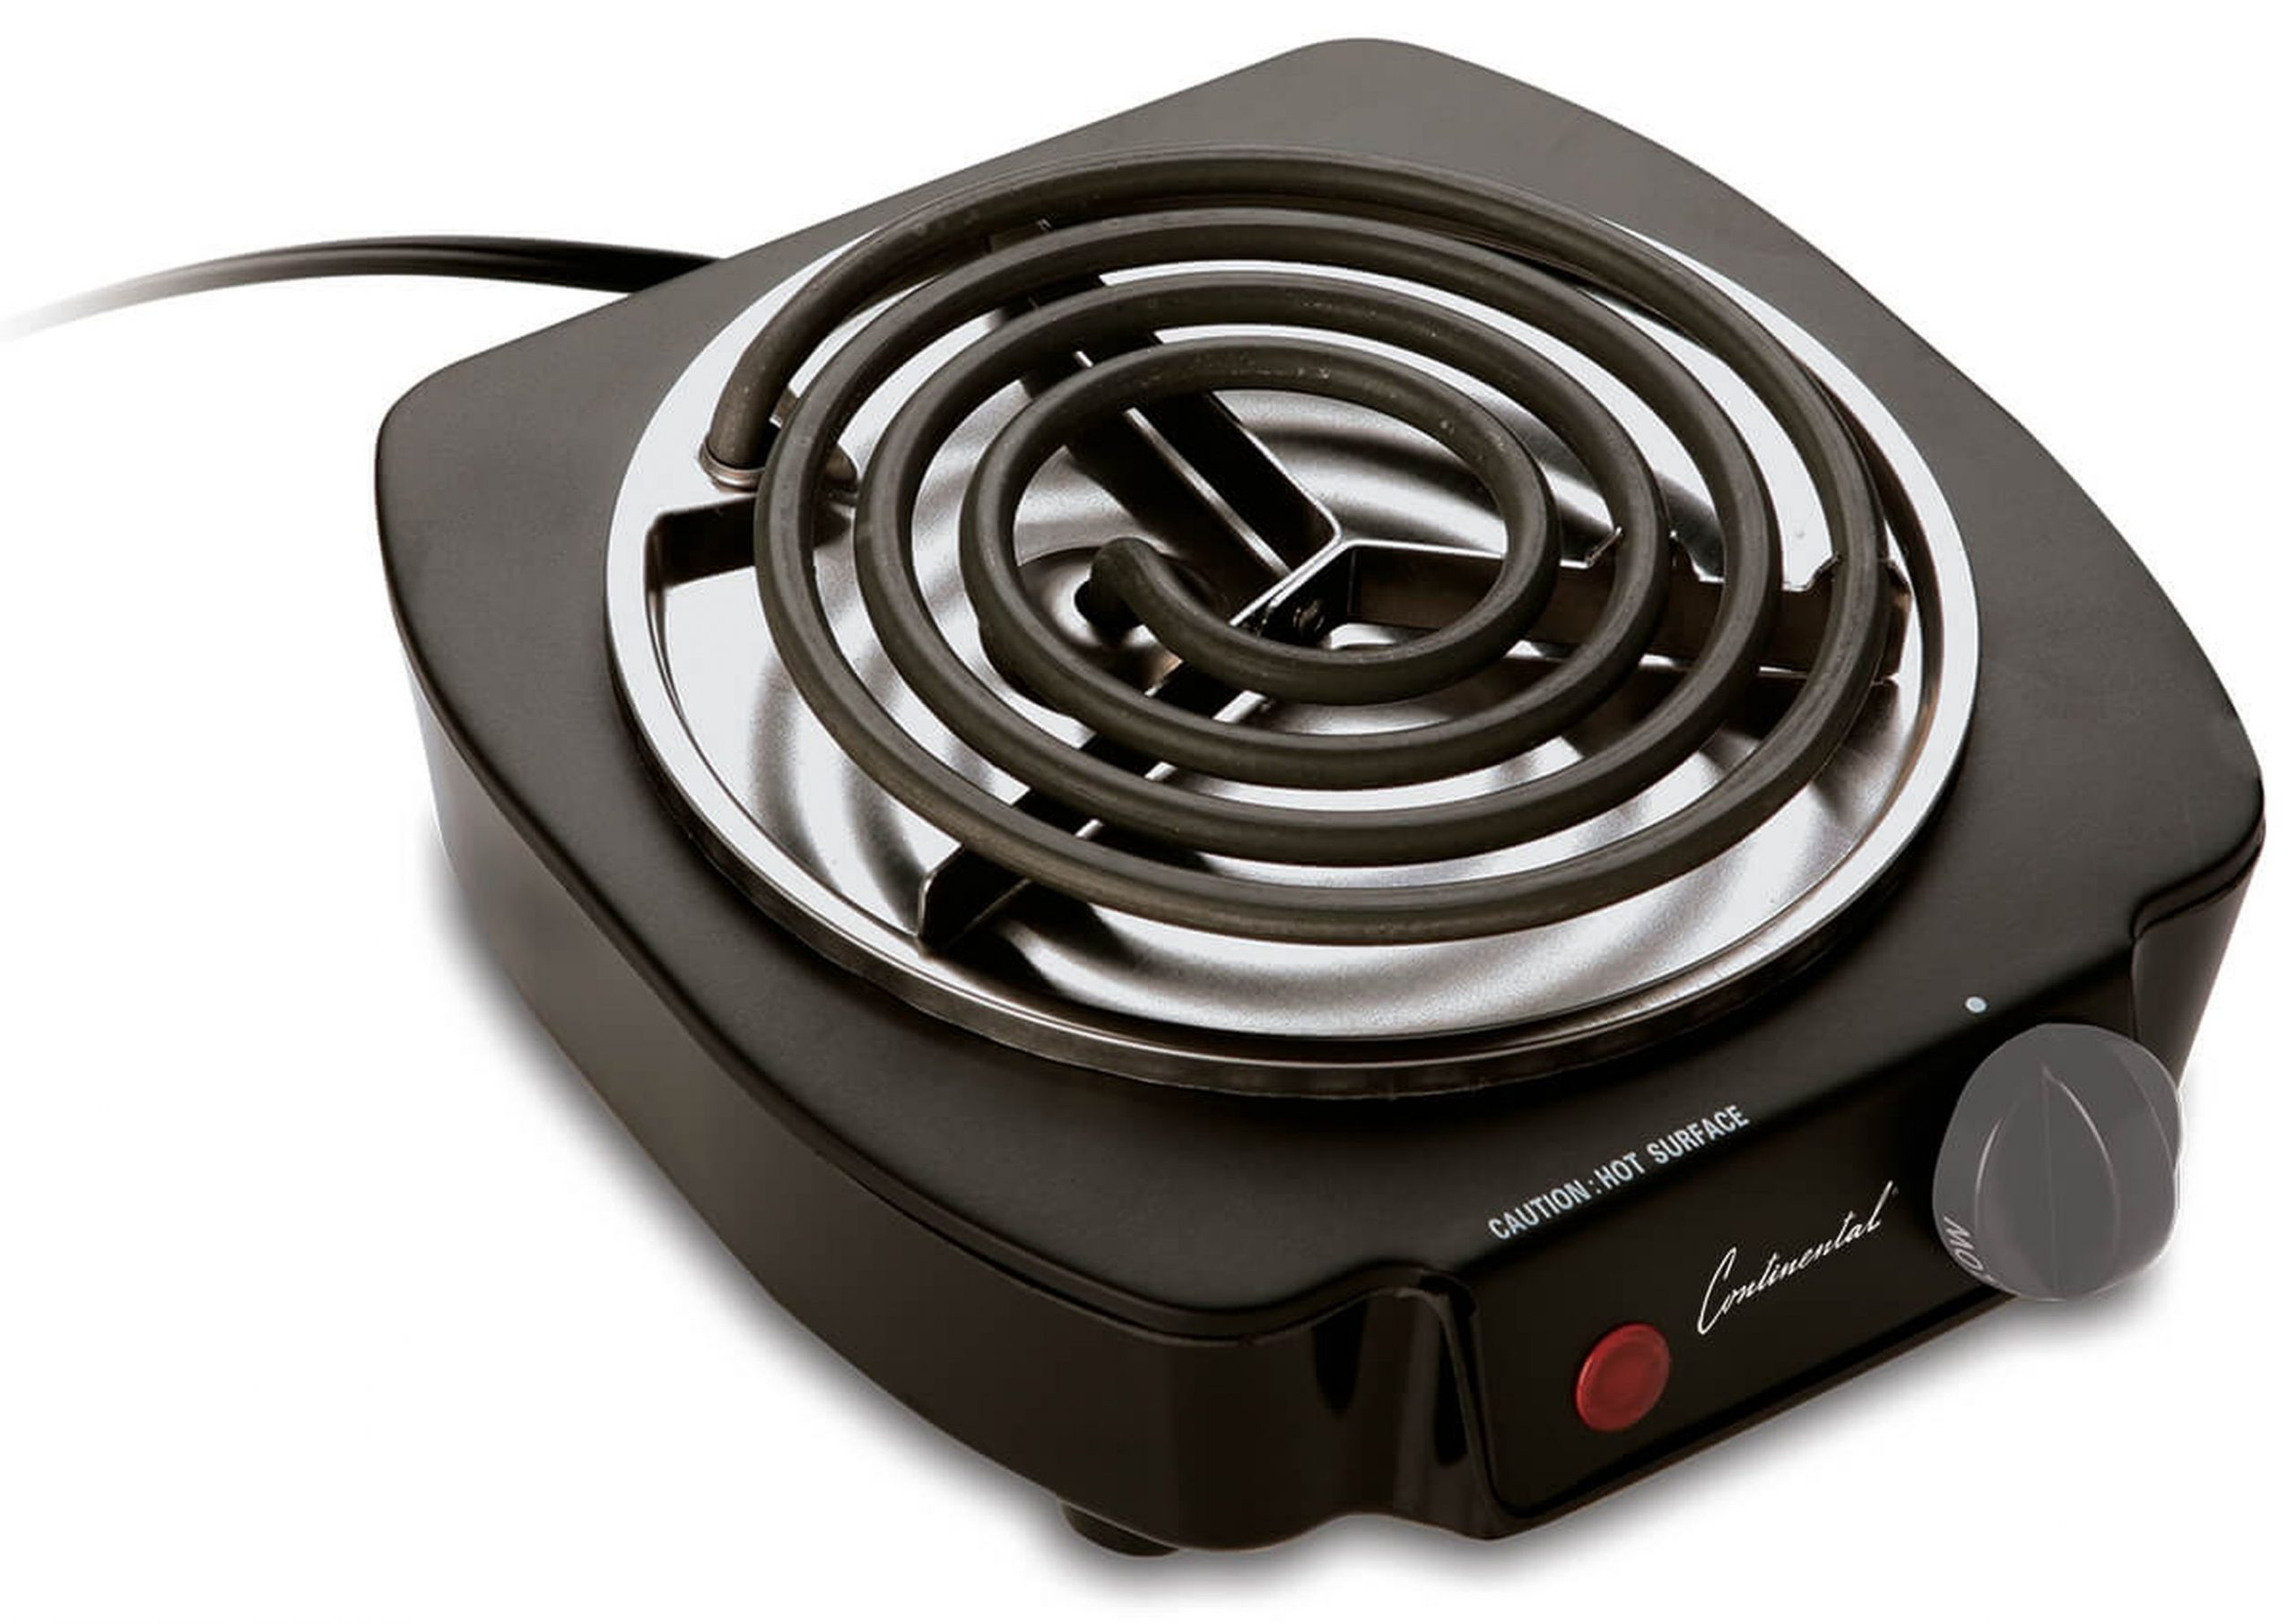 Continental Single Burner 1100W